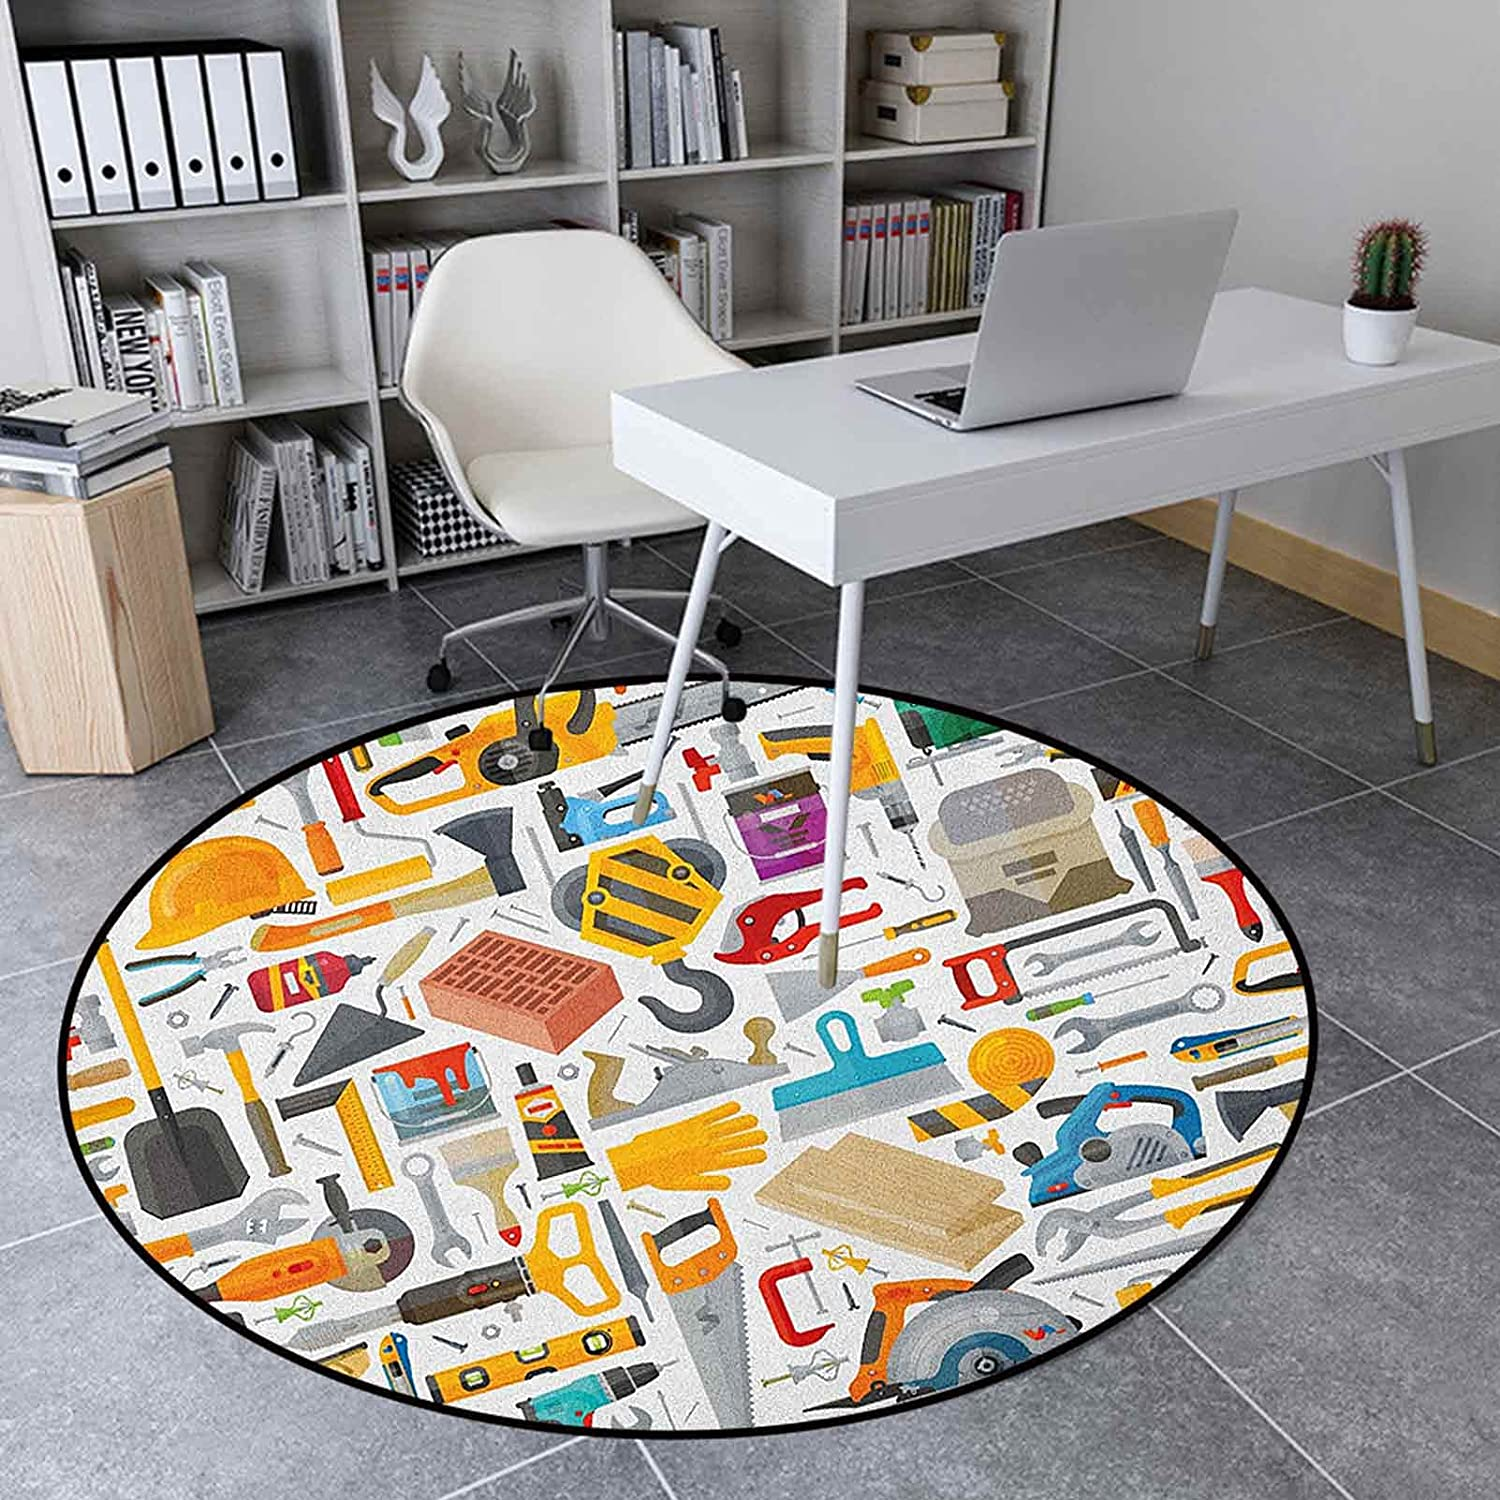 Construction Circle Rug 4.6' Round for Large Free Shipping Cheap Bargain Gift discharge sale Bedroom Kids Rugs